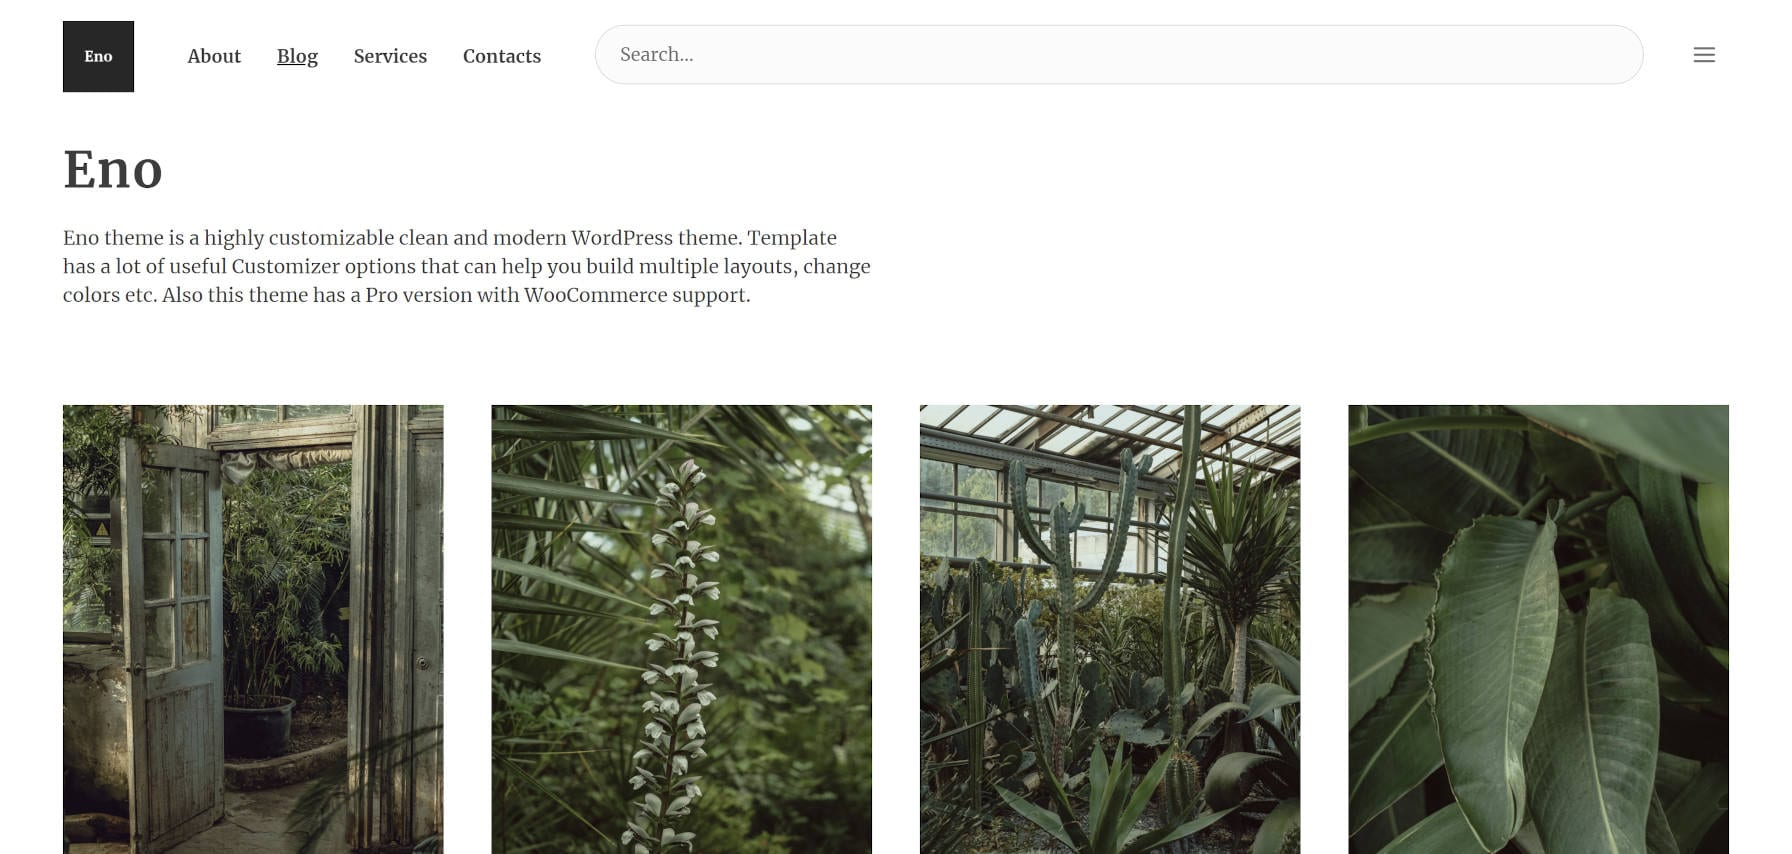 eno-probably-this-is-the-best-blogging-theme-ever Enō: 'Probably This Is the Best Blogging Theme Ever'